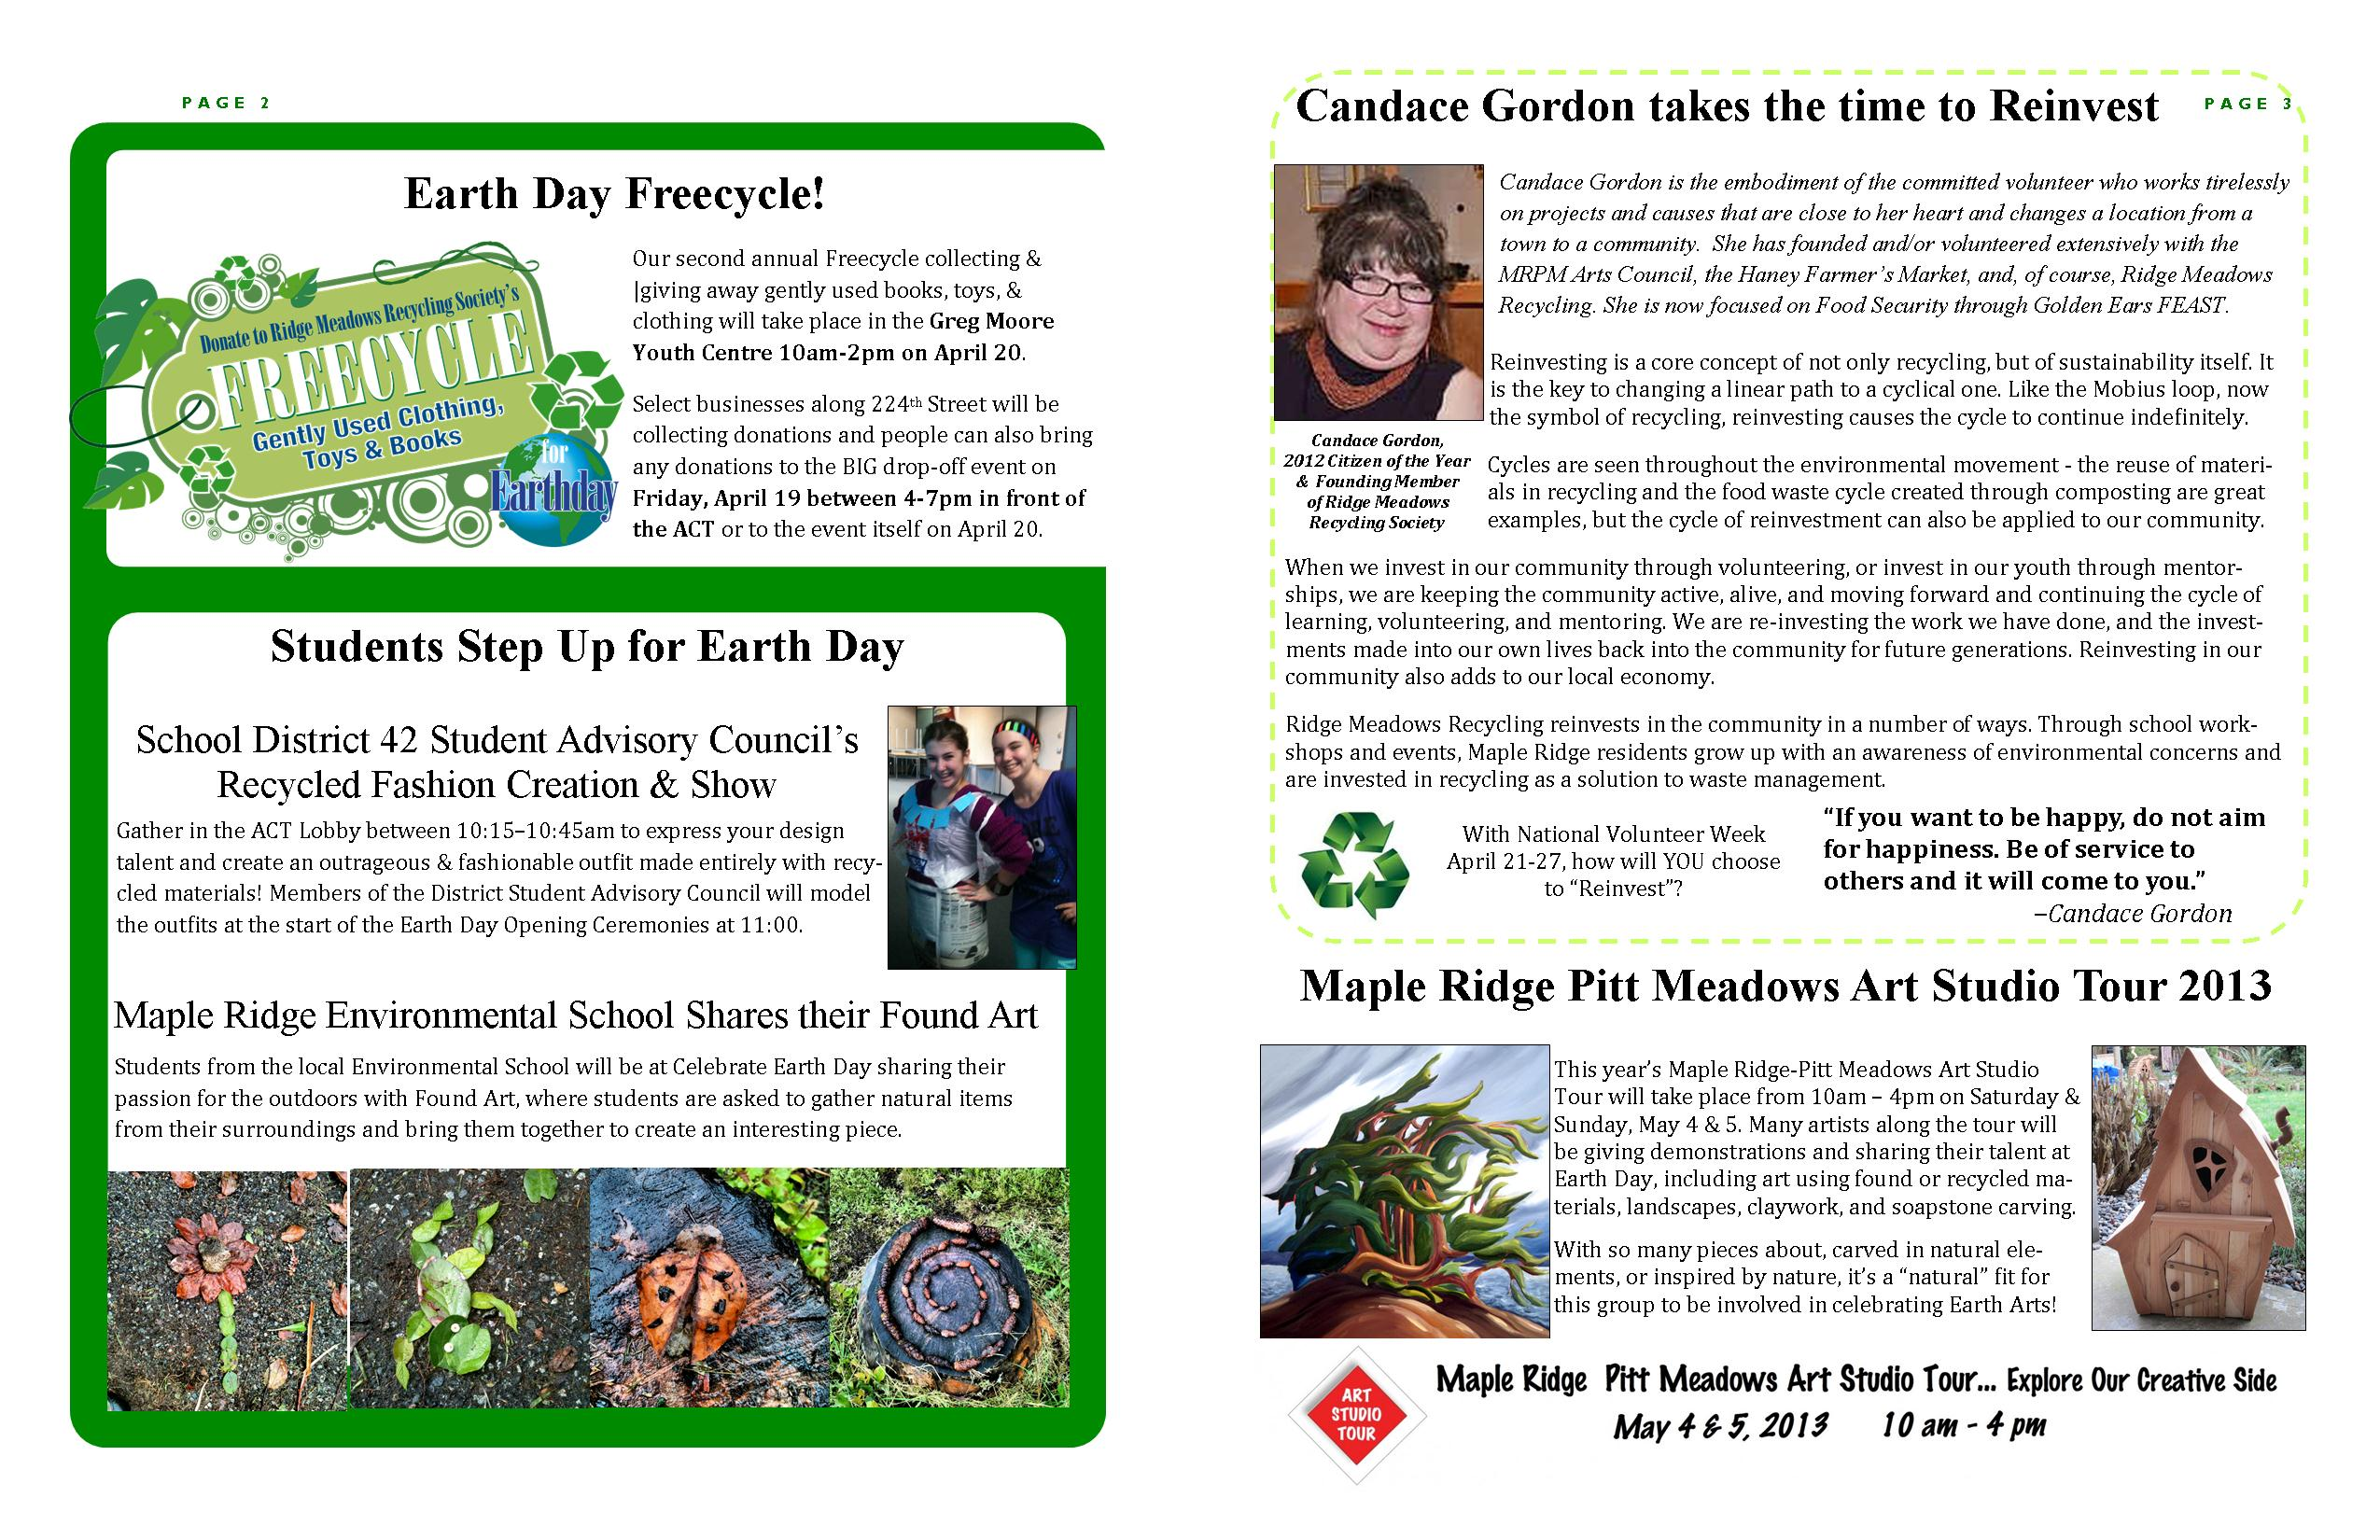 RMRS April, 2013 Newsletter - Pages 2-3